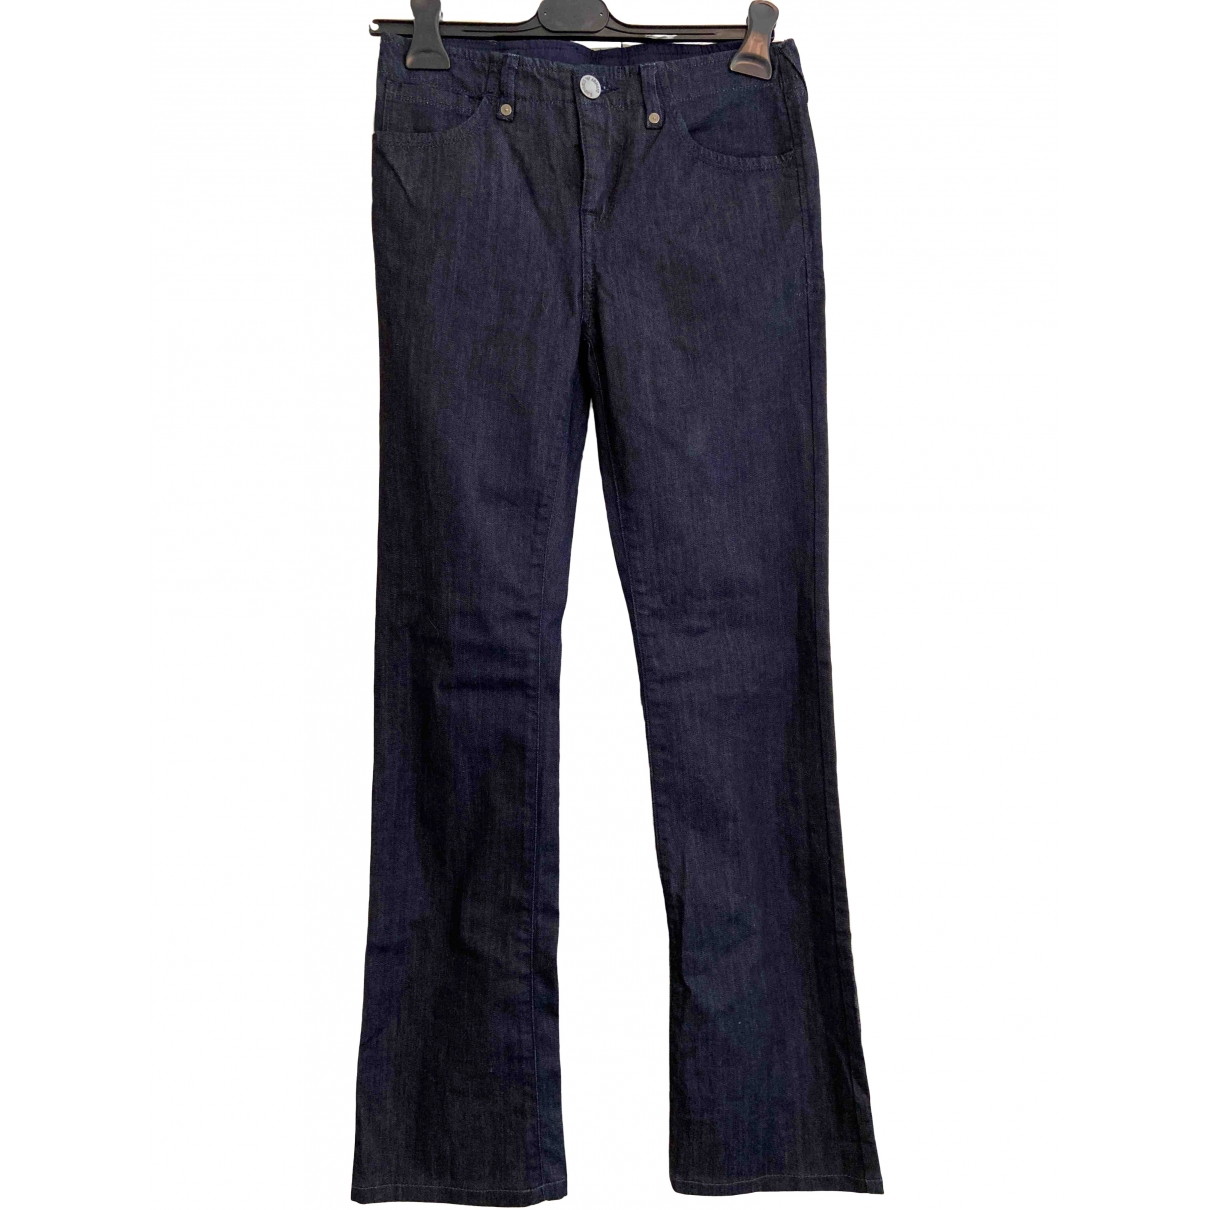 Emporio Armani \N Navy Denim - Jeans Jeans for Women 27 US